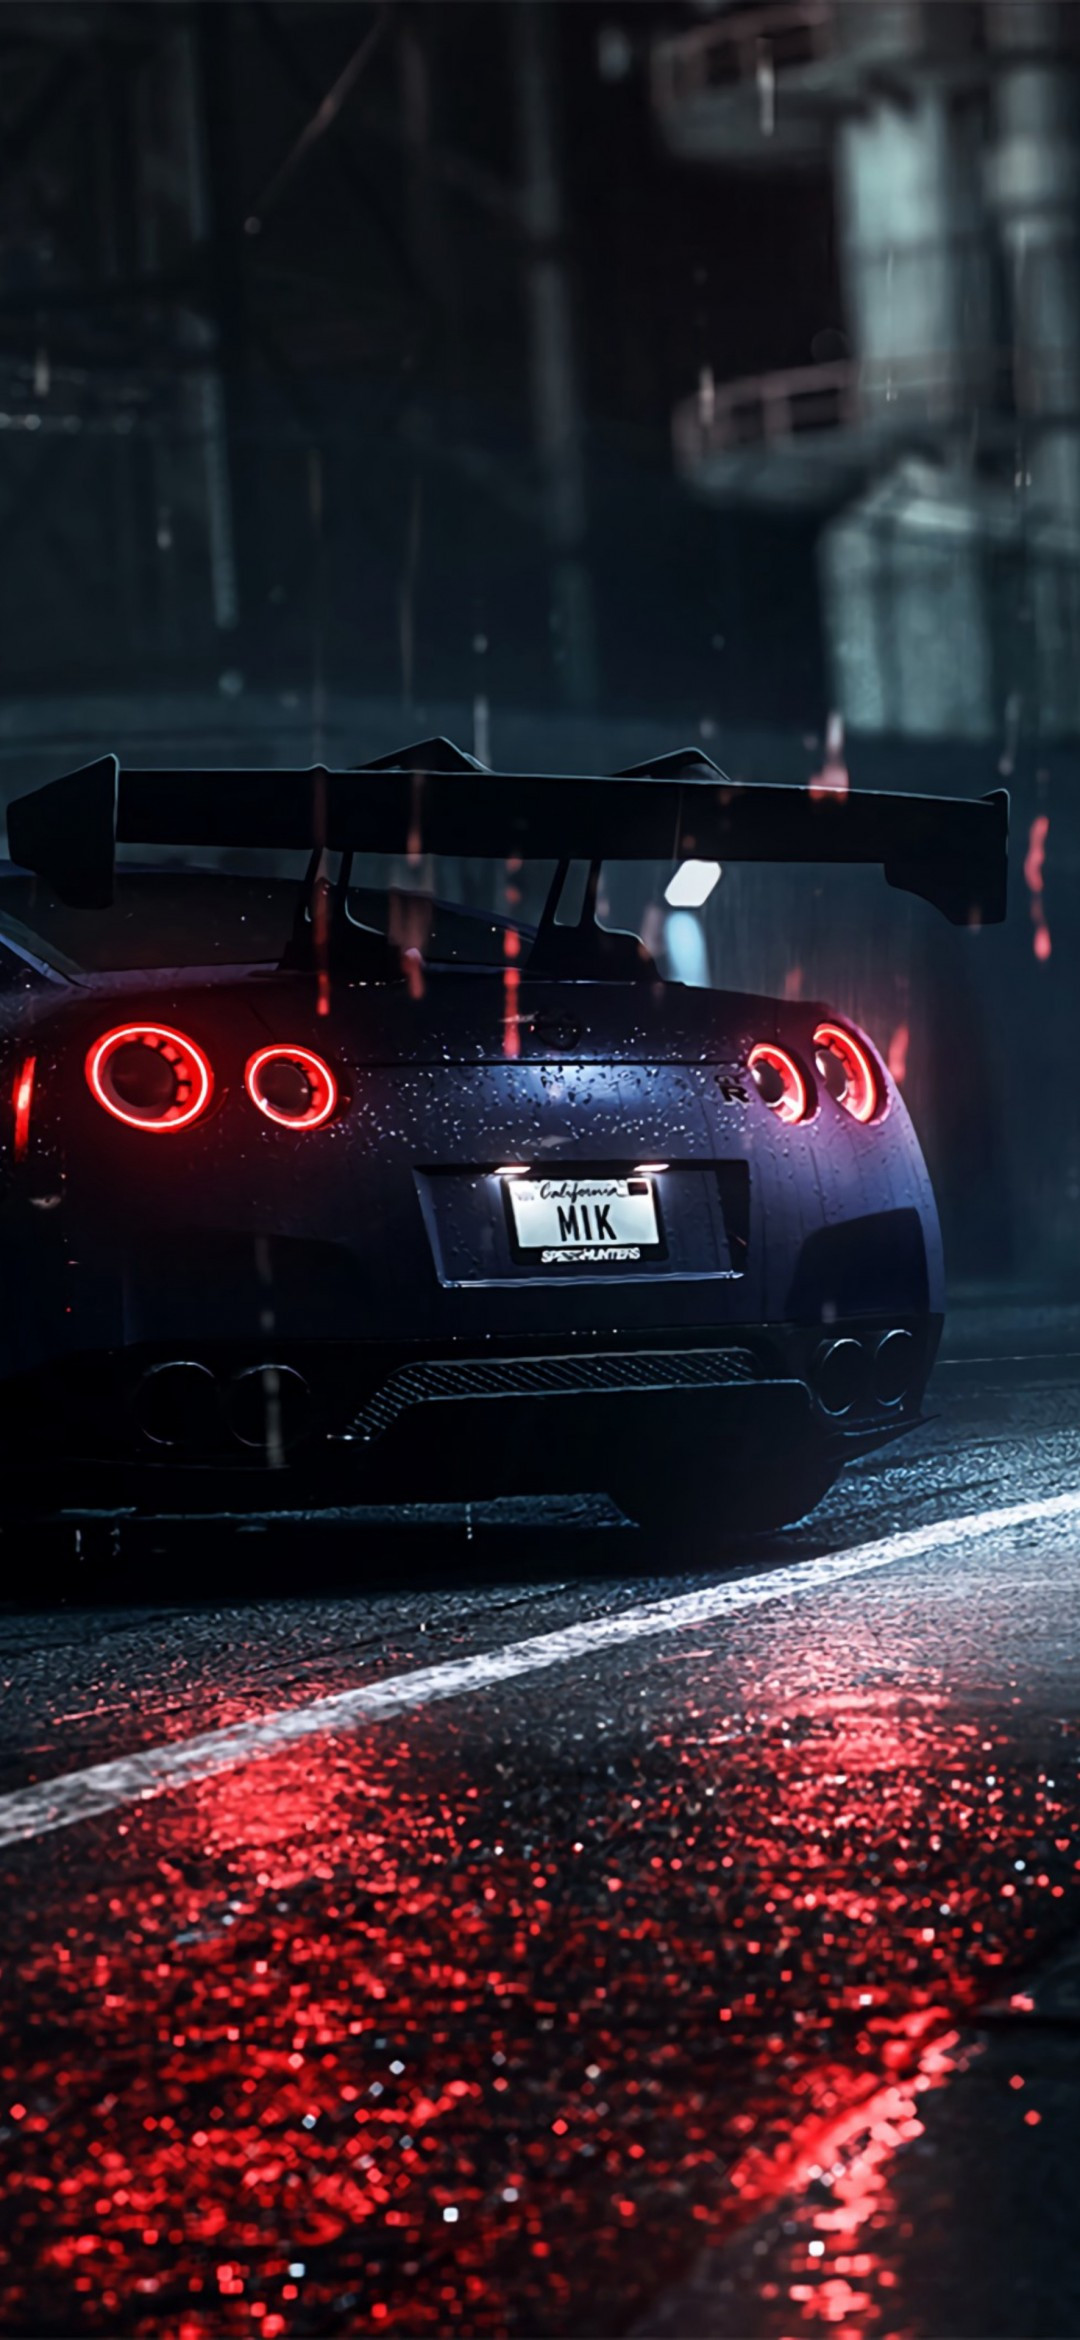 You can also upload and share. Download 1080x2340 Nissan Gt R Racing Cars Wet Road Raining Bokeh Wallpapers For Xiaomi Mi 10 Mi 9 Mi Mix 3 Black Shark 2 Huawei P30 Pro Vivo V15 Pro